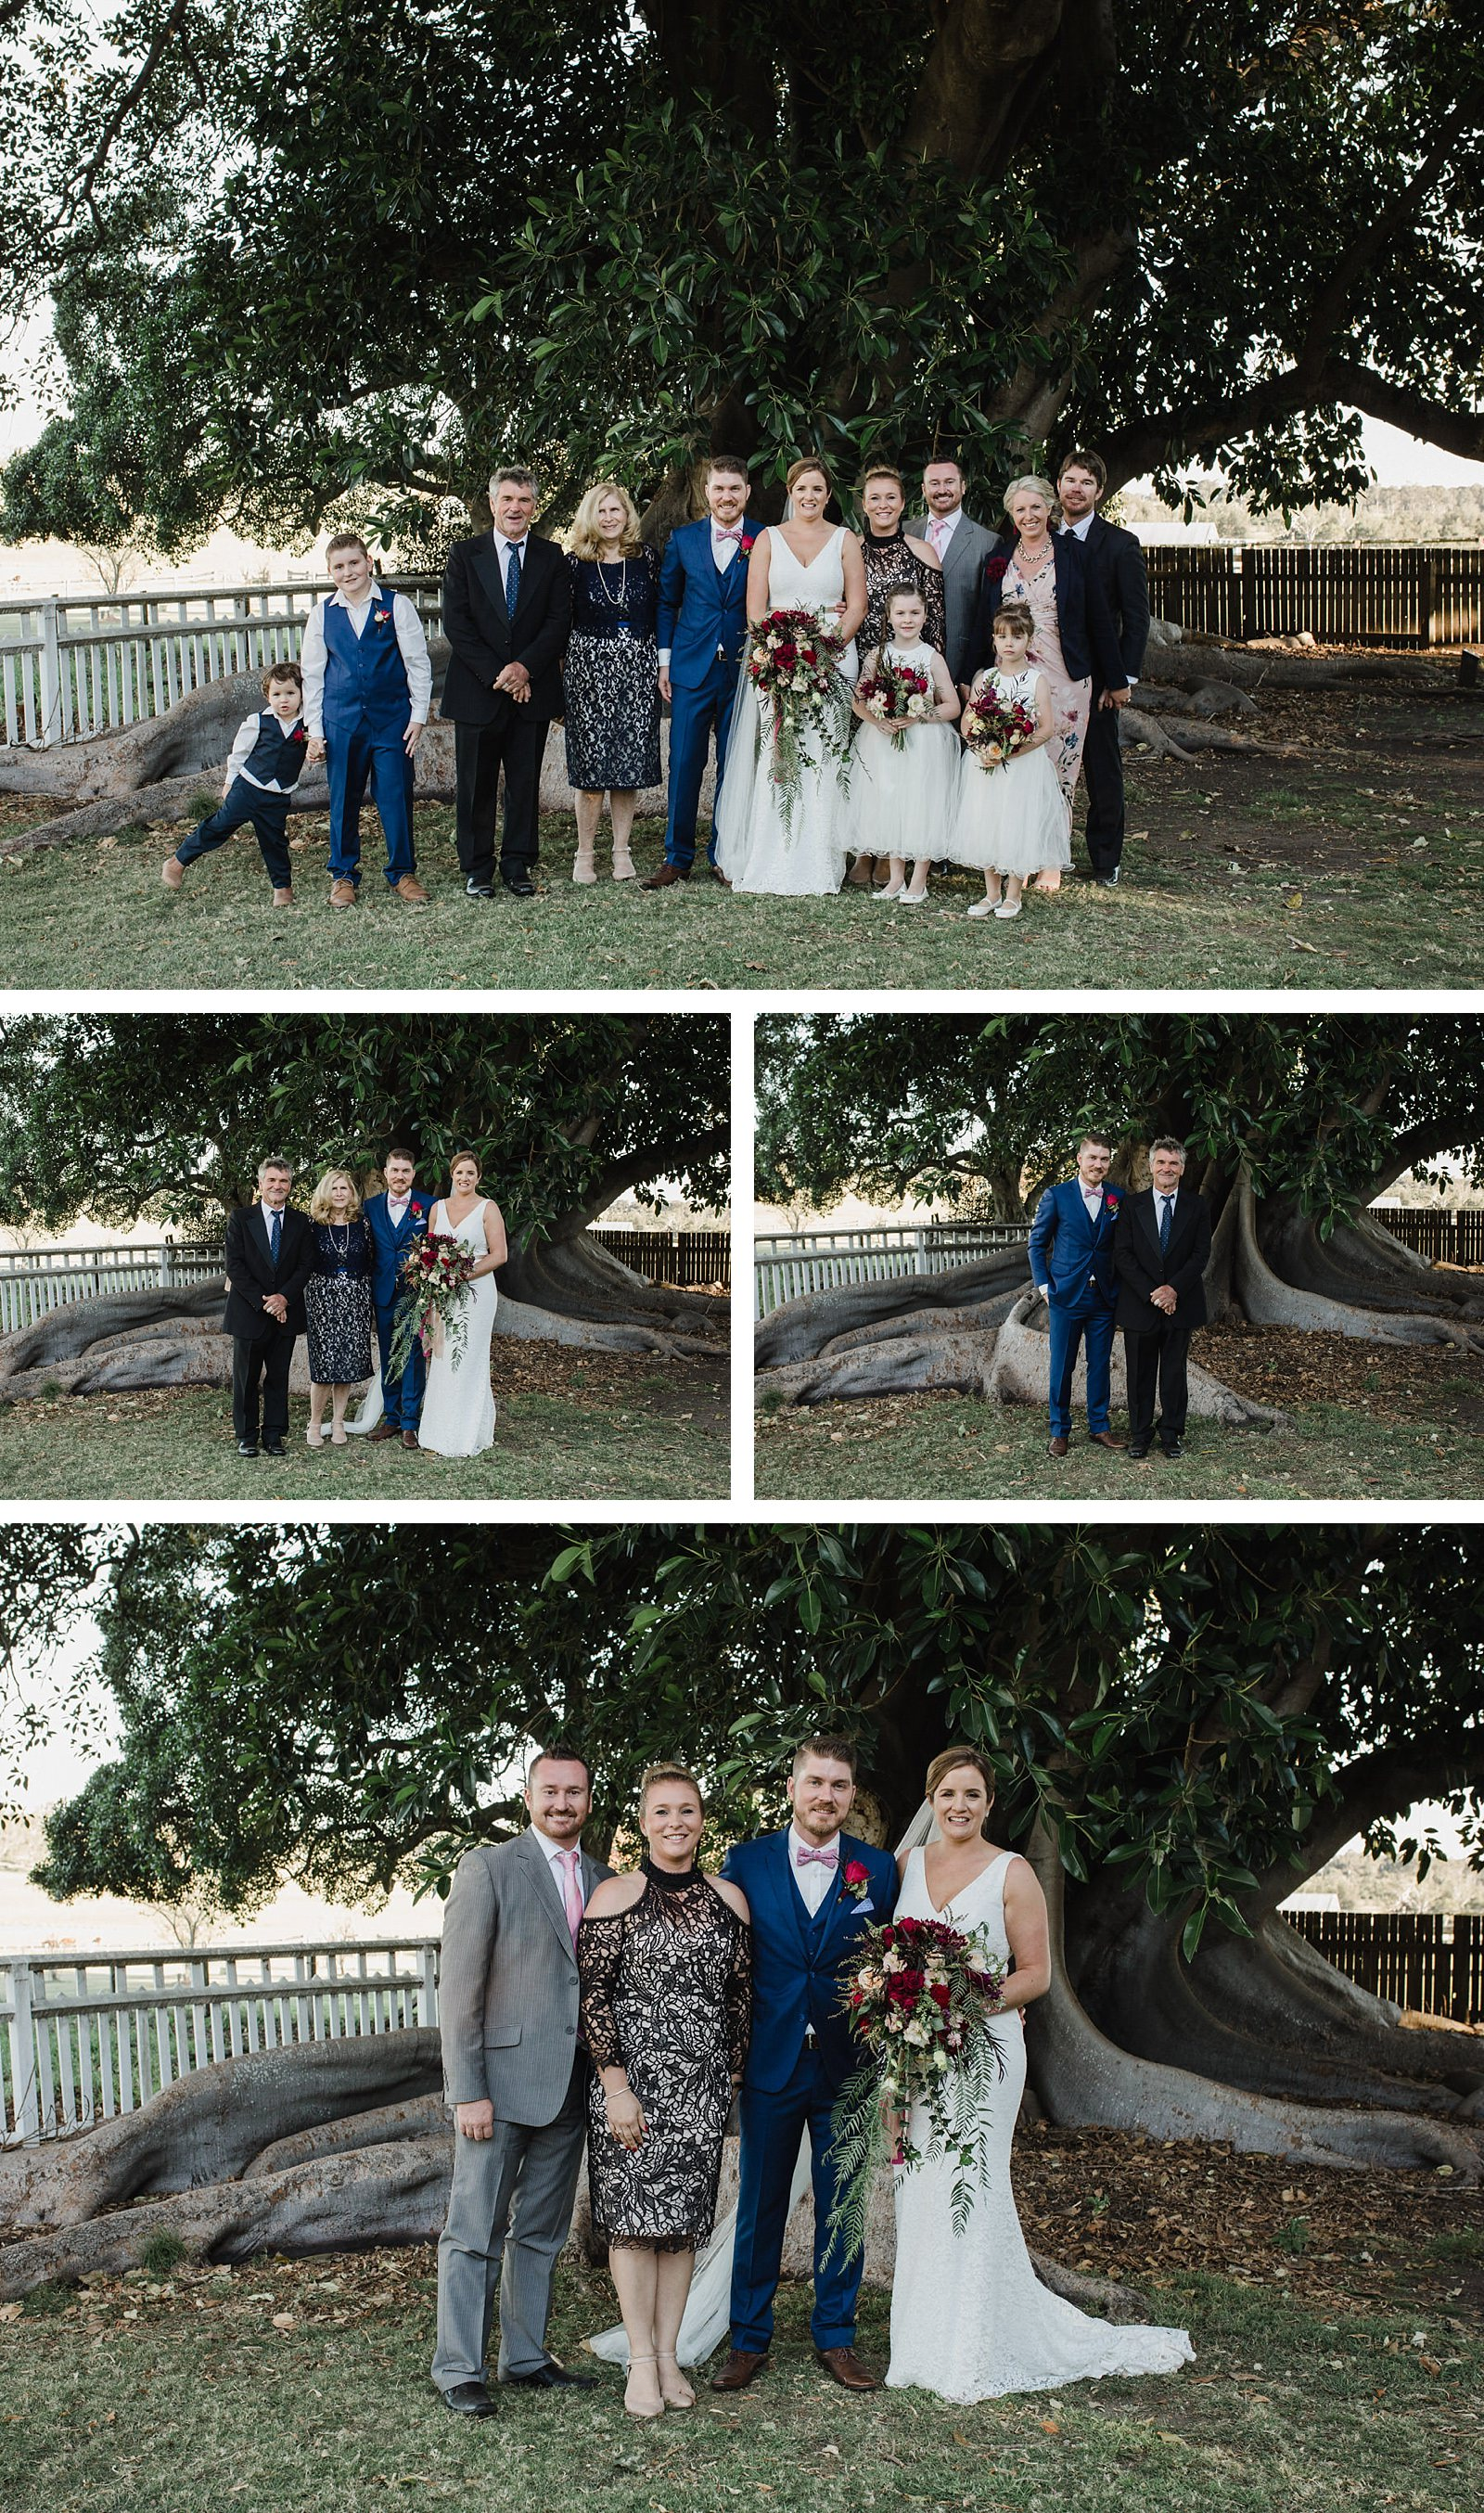 072Hunter Valley Wedding Photographers Bryce Noone Photography at Tocal Homestead Wedding Venue.jpg